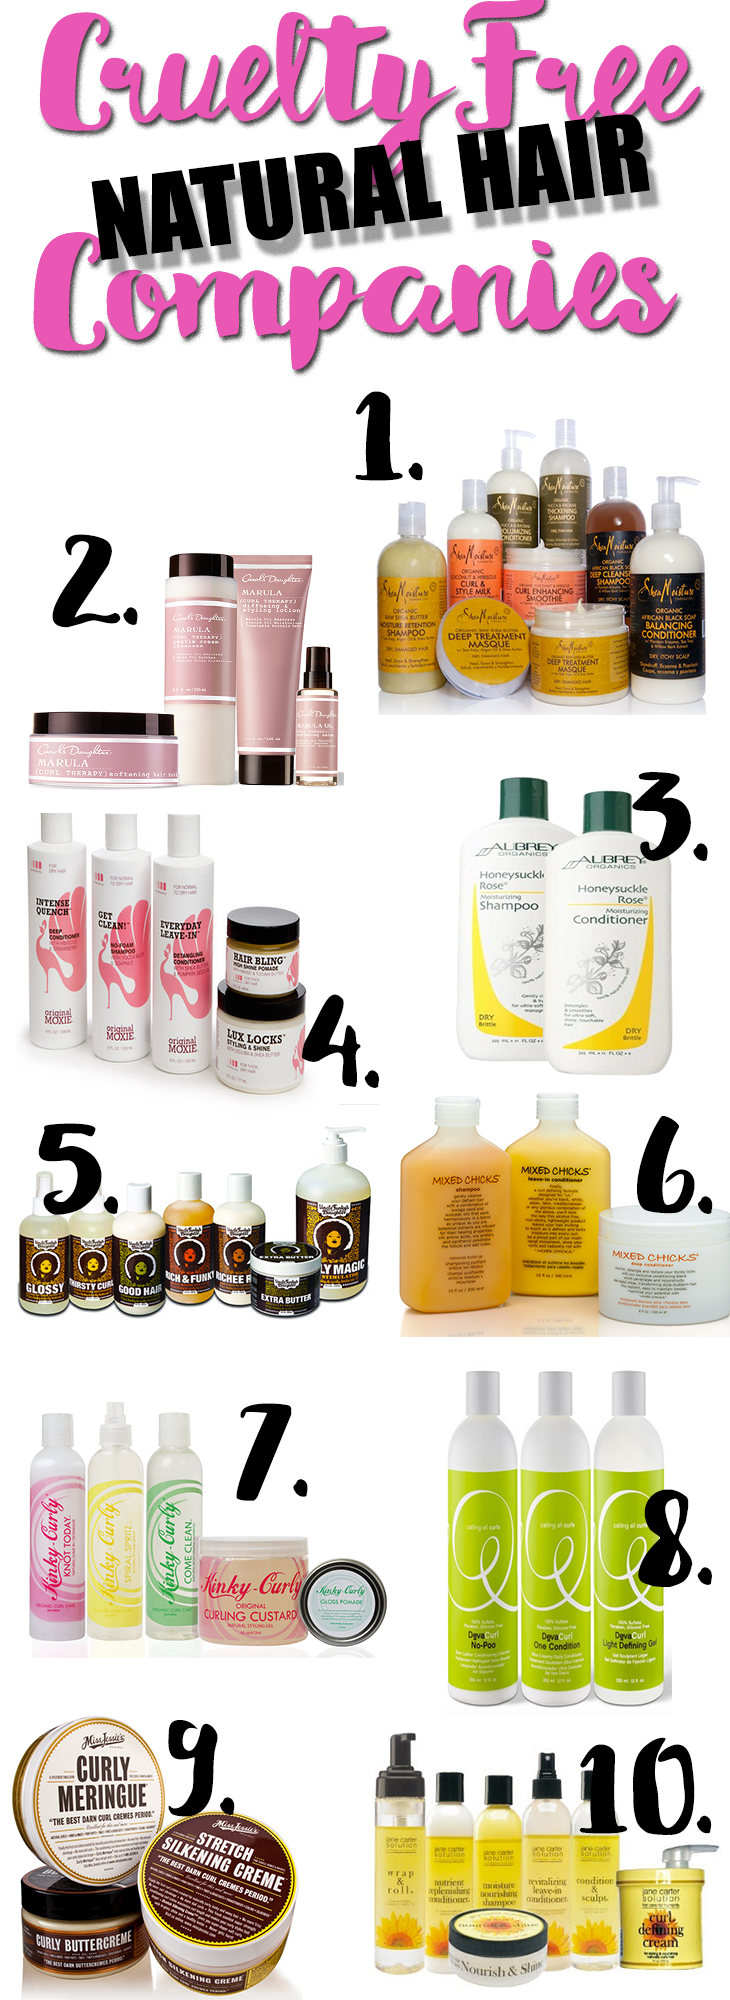 Ten CrueltyFree Natural Hair Companies You Should Be